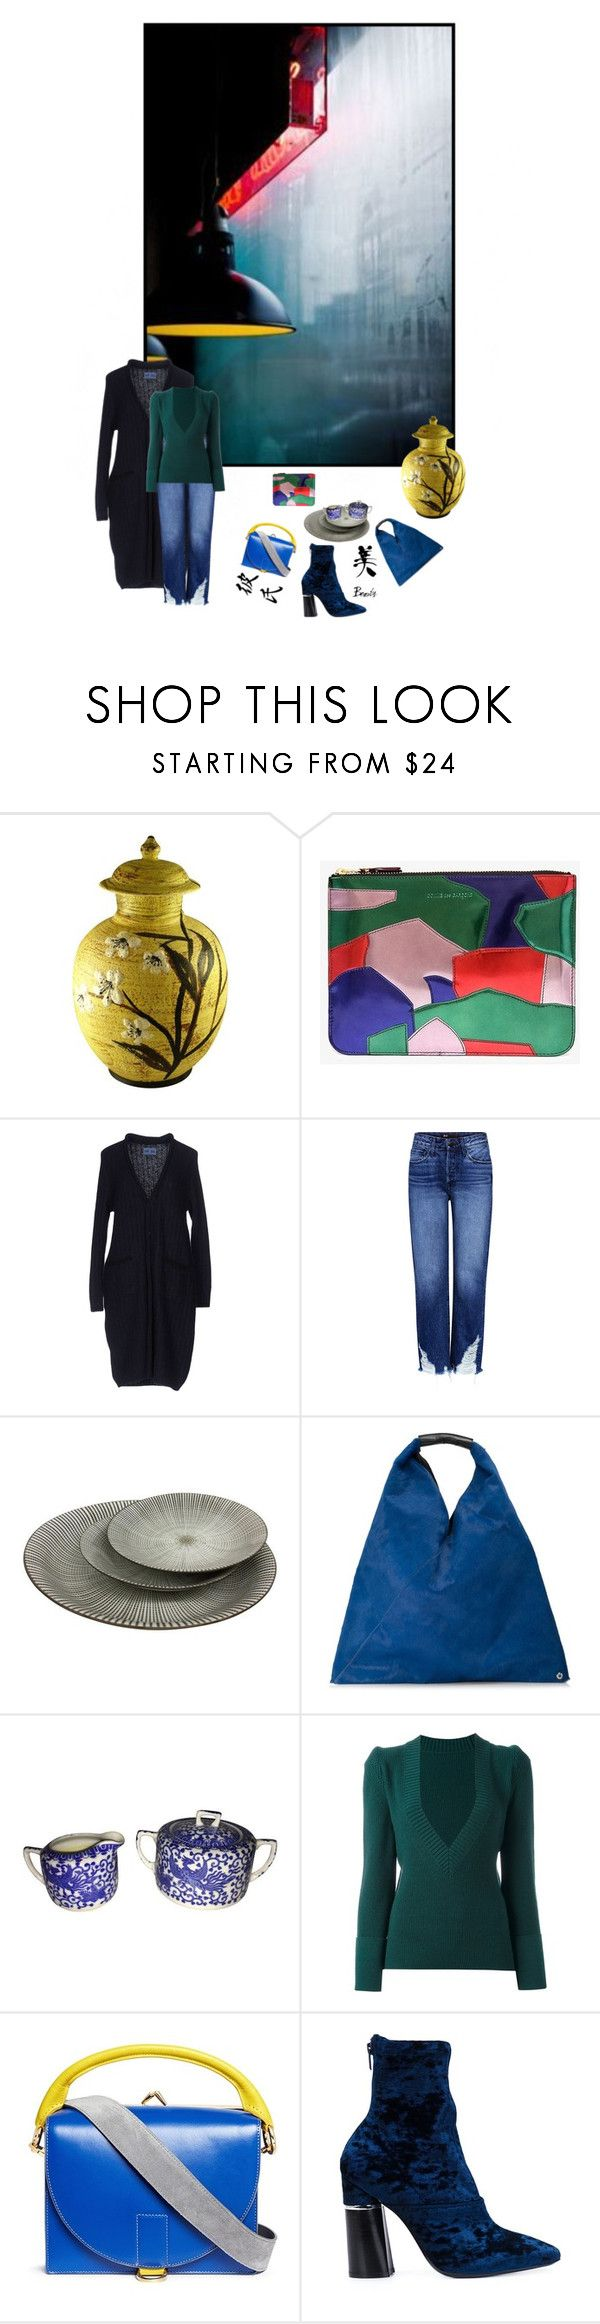 """""""Higher Ground"""" by sue-mes ❤ liked on Polyvore featuring Comme des Garçons, Blue Blue Japan, 3x1, MM6 Maison Margiela, Sacai and 3.1 Phillip Lim"""